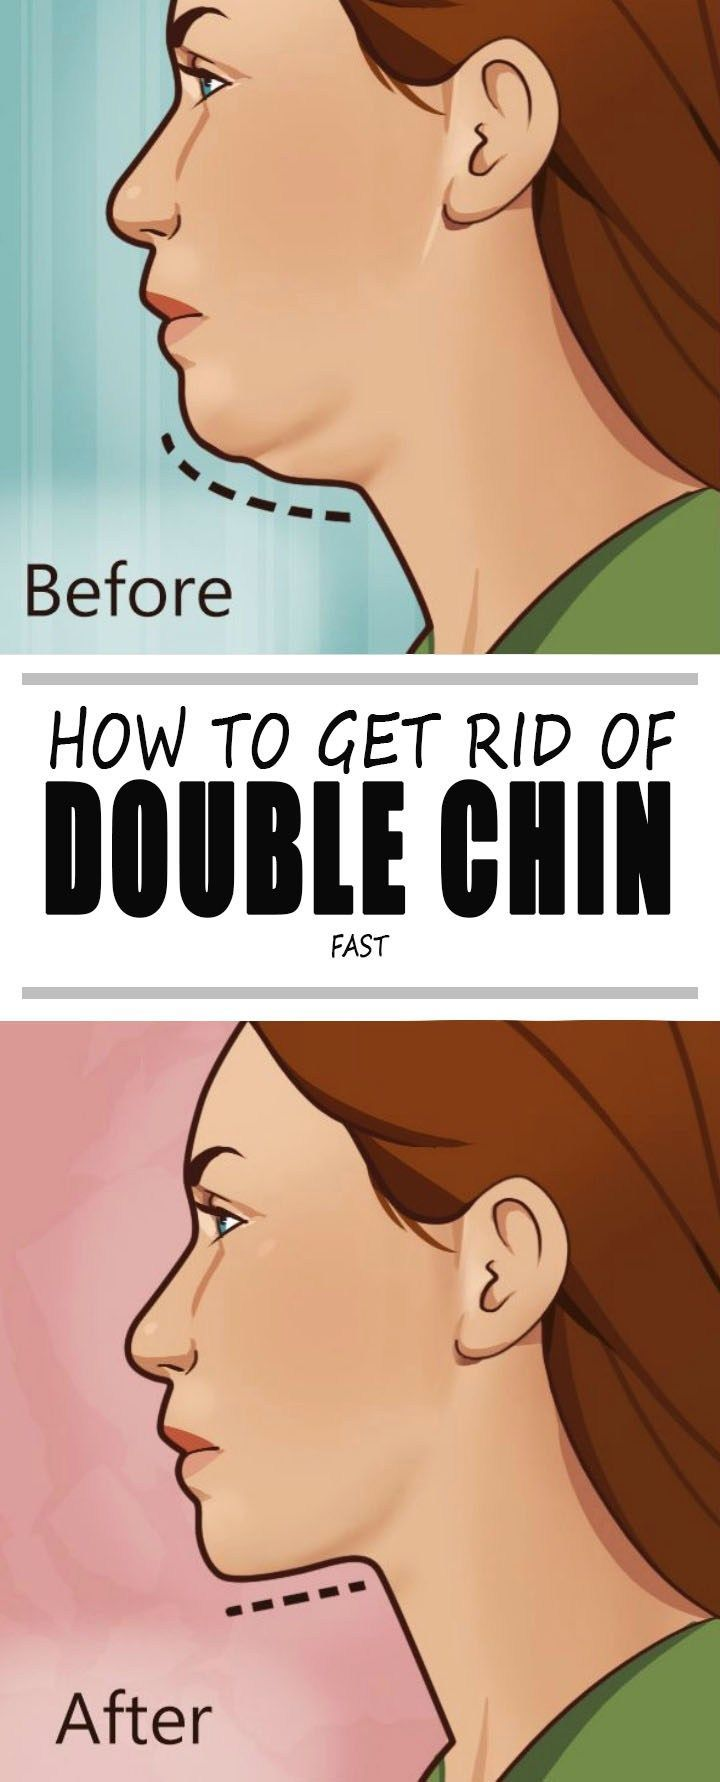 How to get rid of a double chin fast doublechin